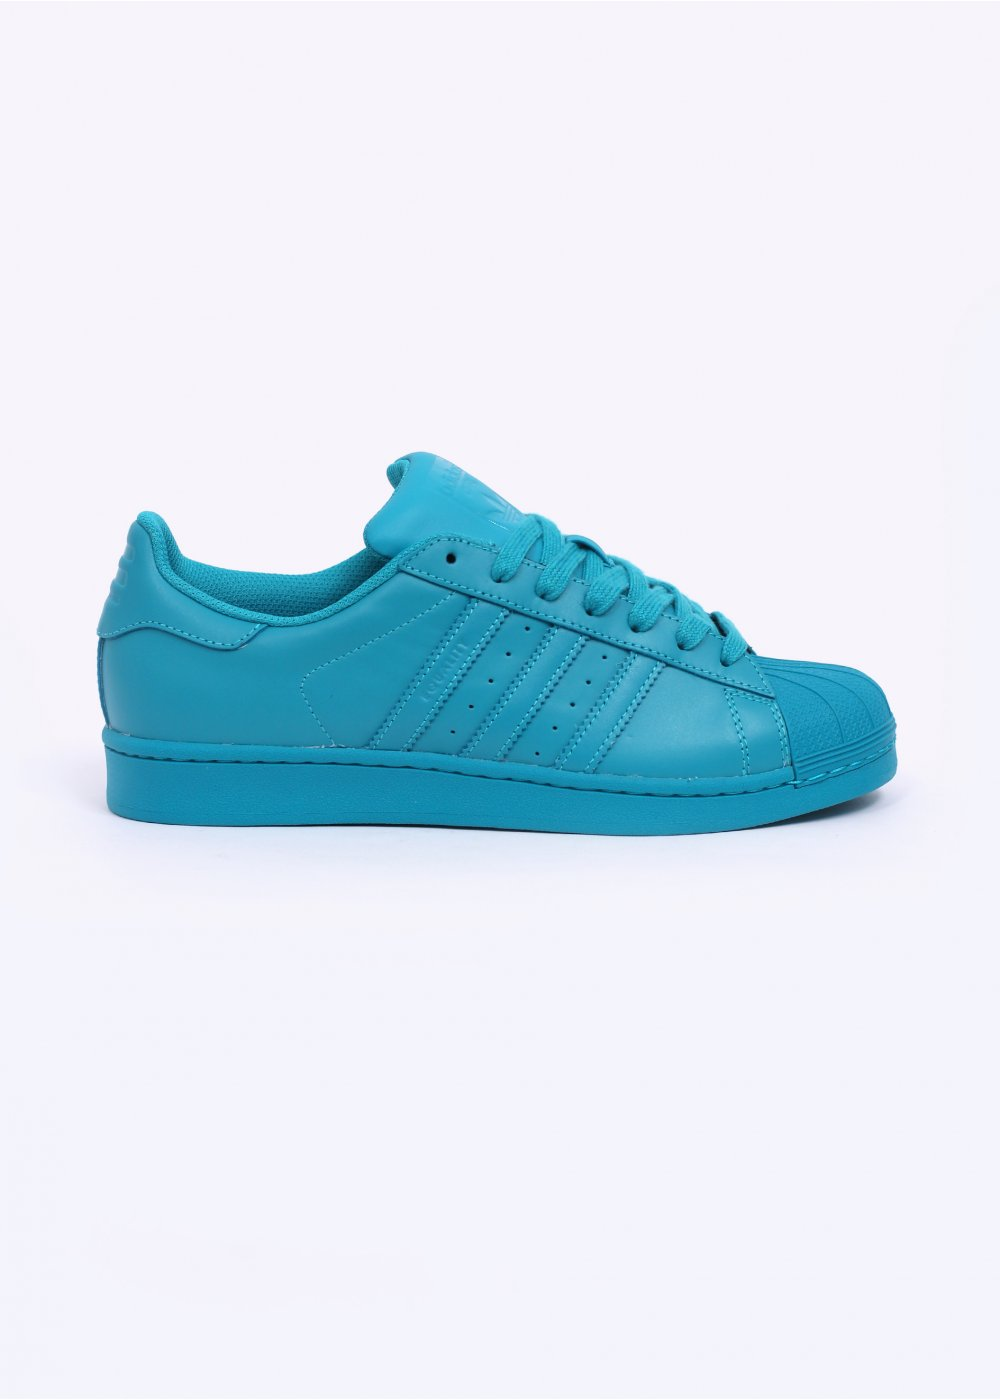 69ef00d8b99d8 adidas Originals Superstar Supercolour - Lab Green